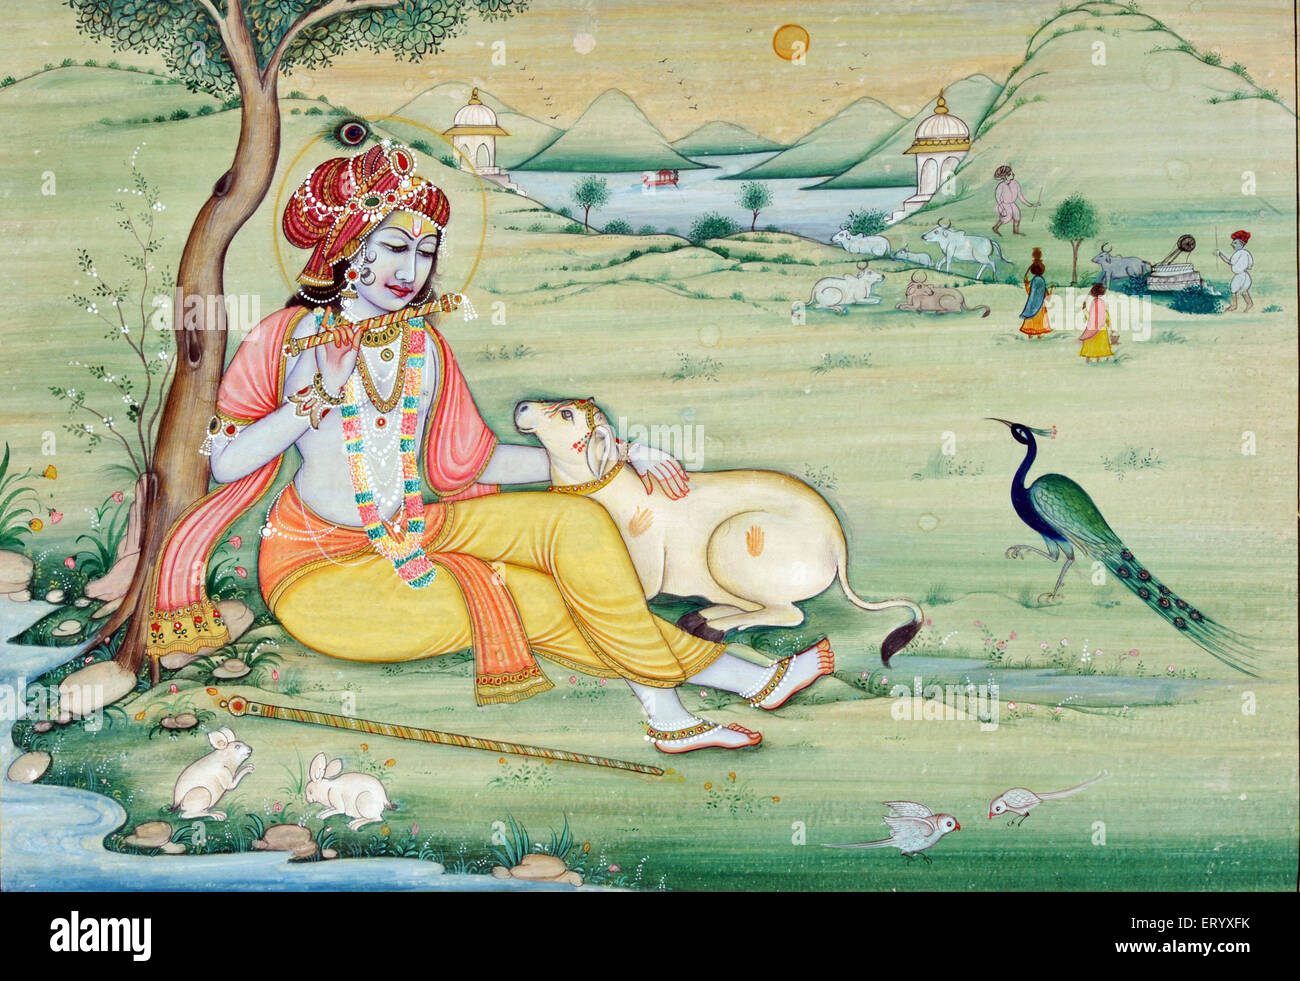 Miniature painting of krishna playing flute - Stock Image